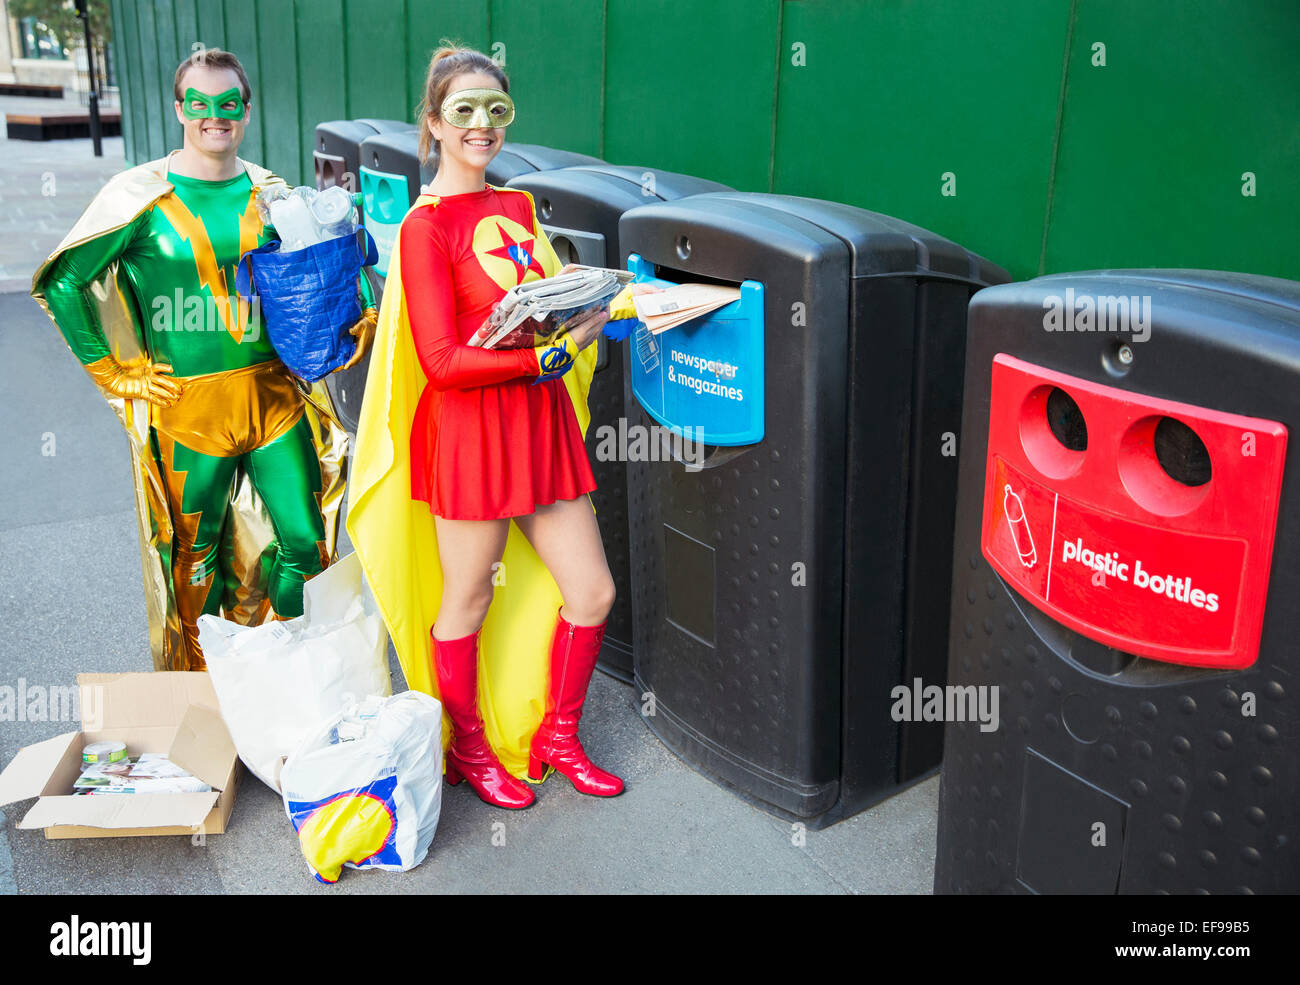 Superhero couple recycling on city sidewalk - Stock Image